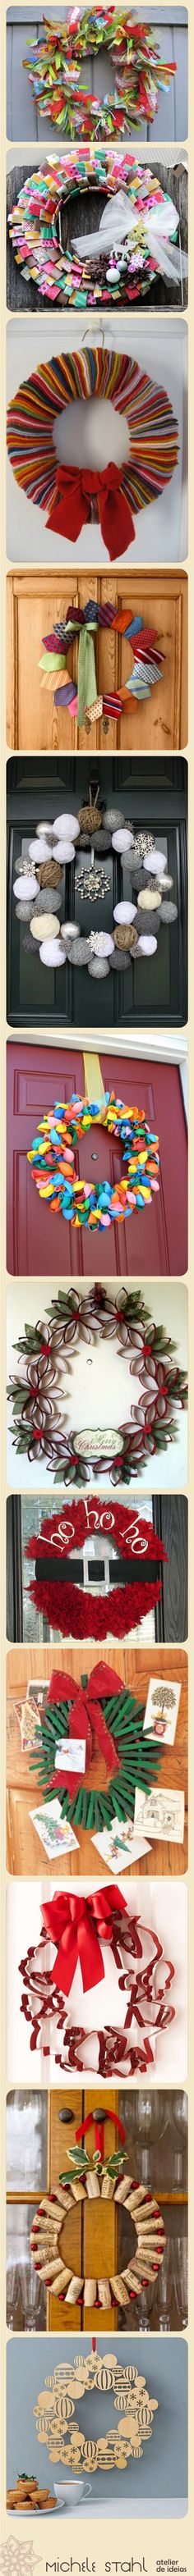 Decorando a casa pro Natal: Ideias de Guirlanda / #Christmas #wreath #ideas